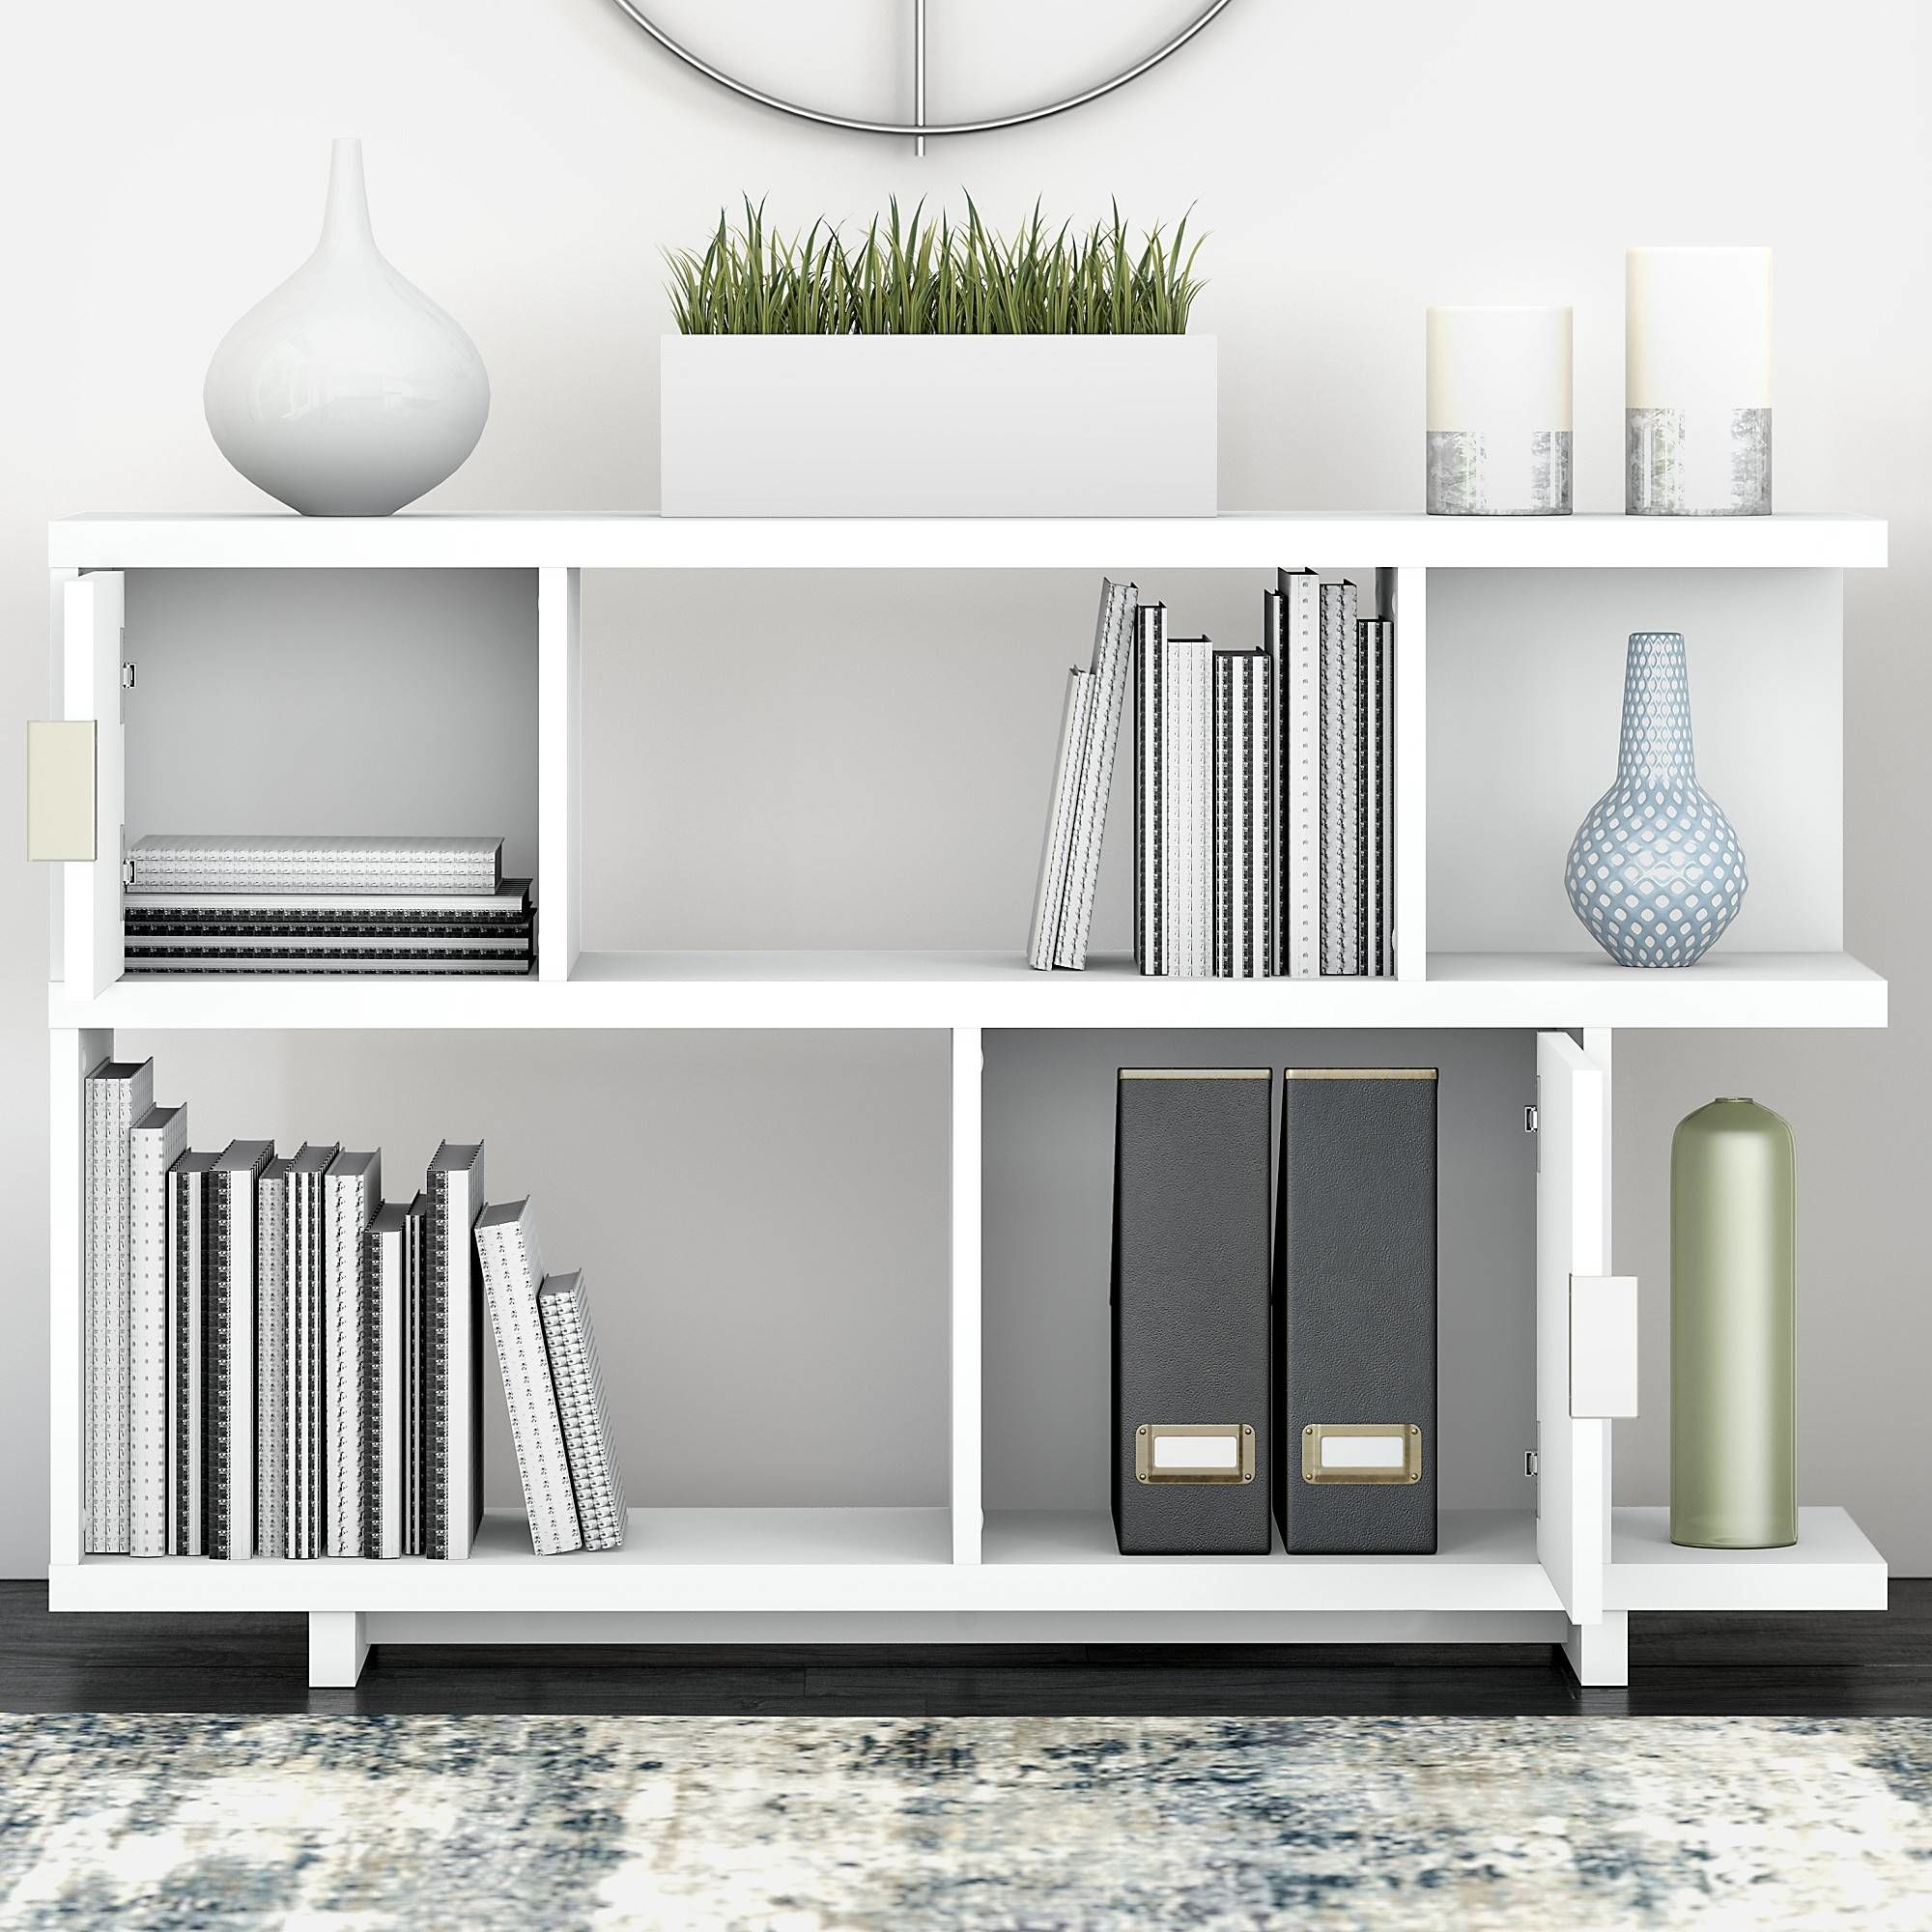 Avenue Low Geometric Bookcase with Doors in Pure White